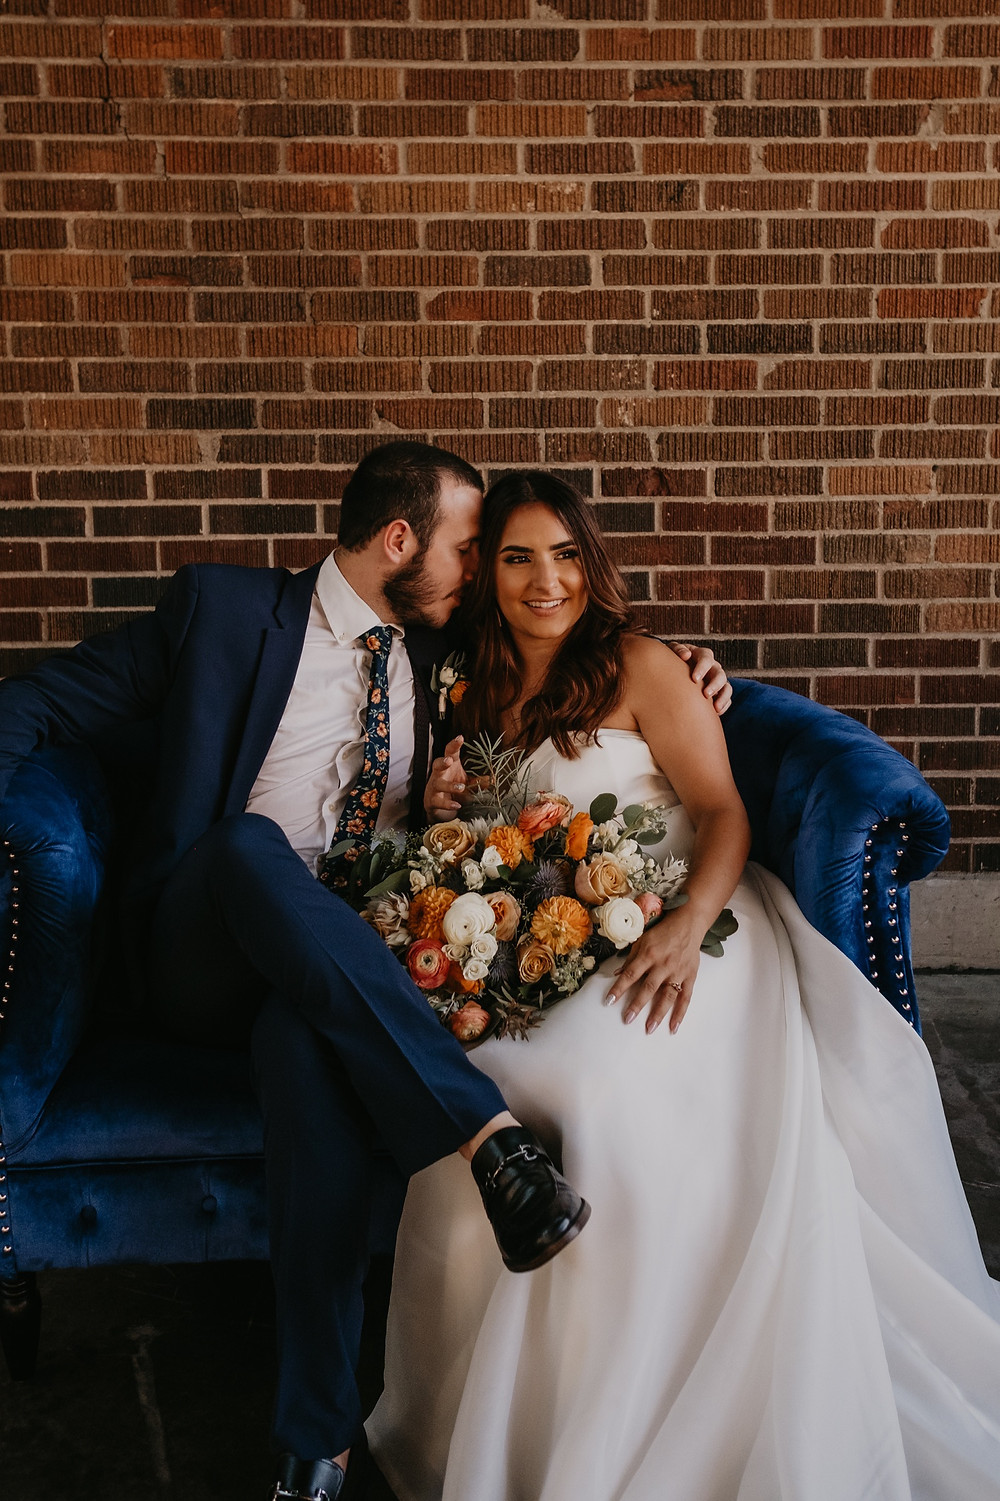 Bride and groom on blue velvet couch at Eastern Market. Photographed by Nicole Leanne Photography.